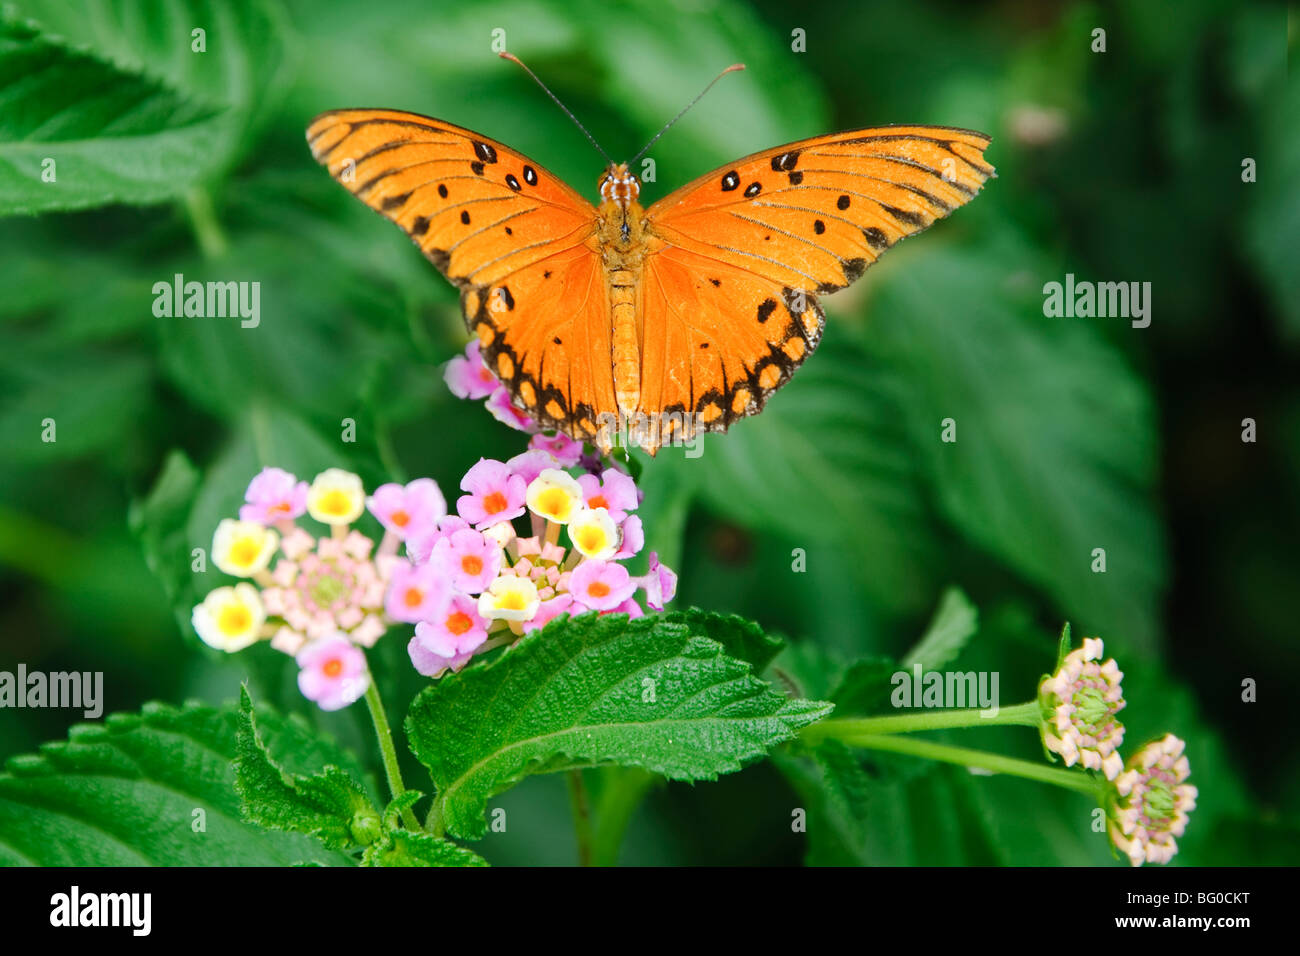 Gulf Fritillary butterfly feeding on flowers nectar. - Stock Image